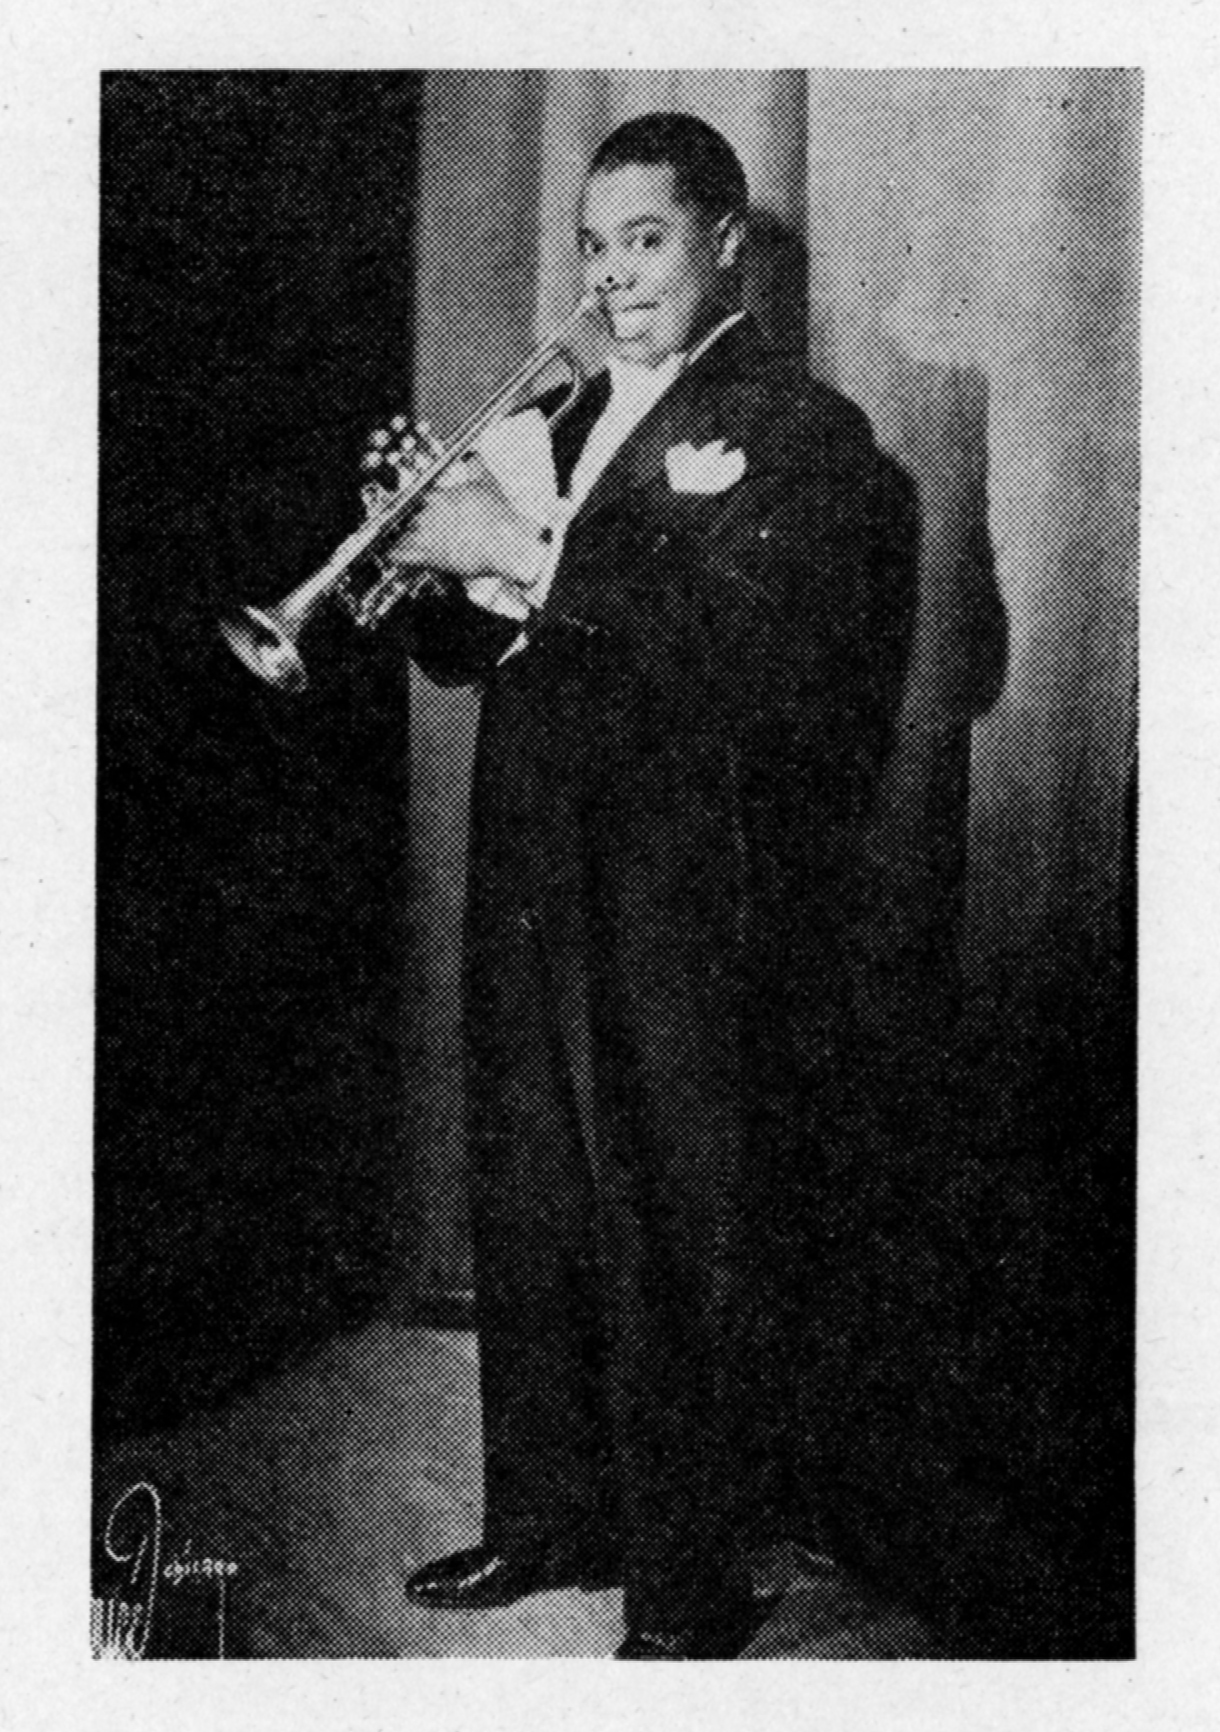 Maud_Cuney_Hare-154-Louis_Armstrong